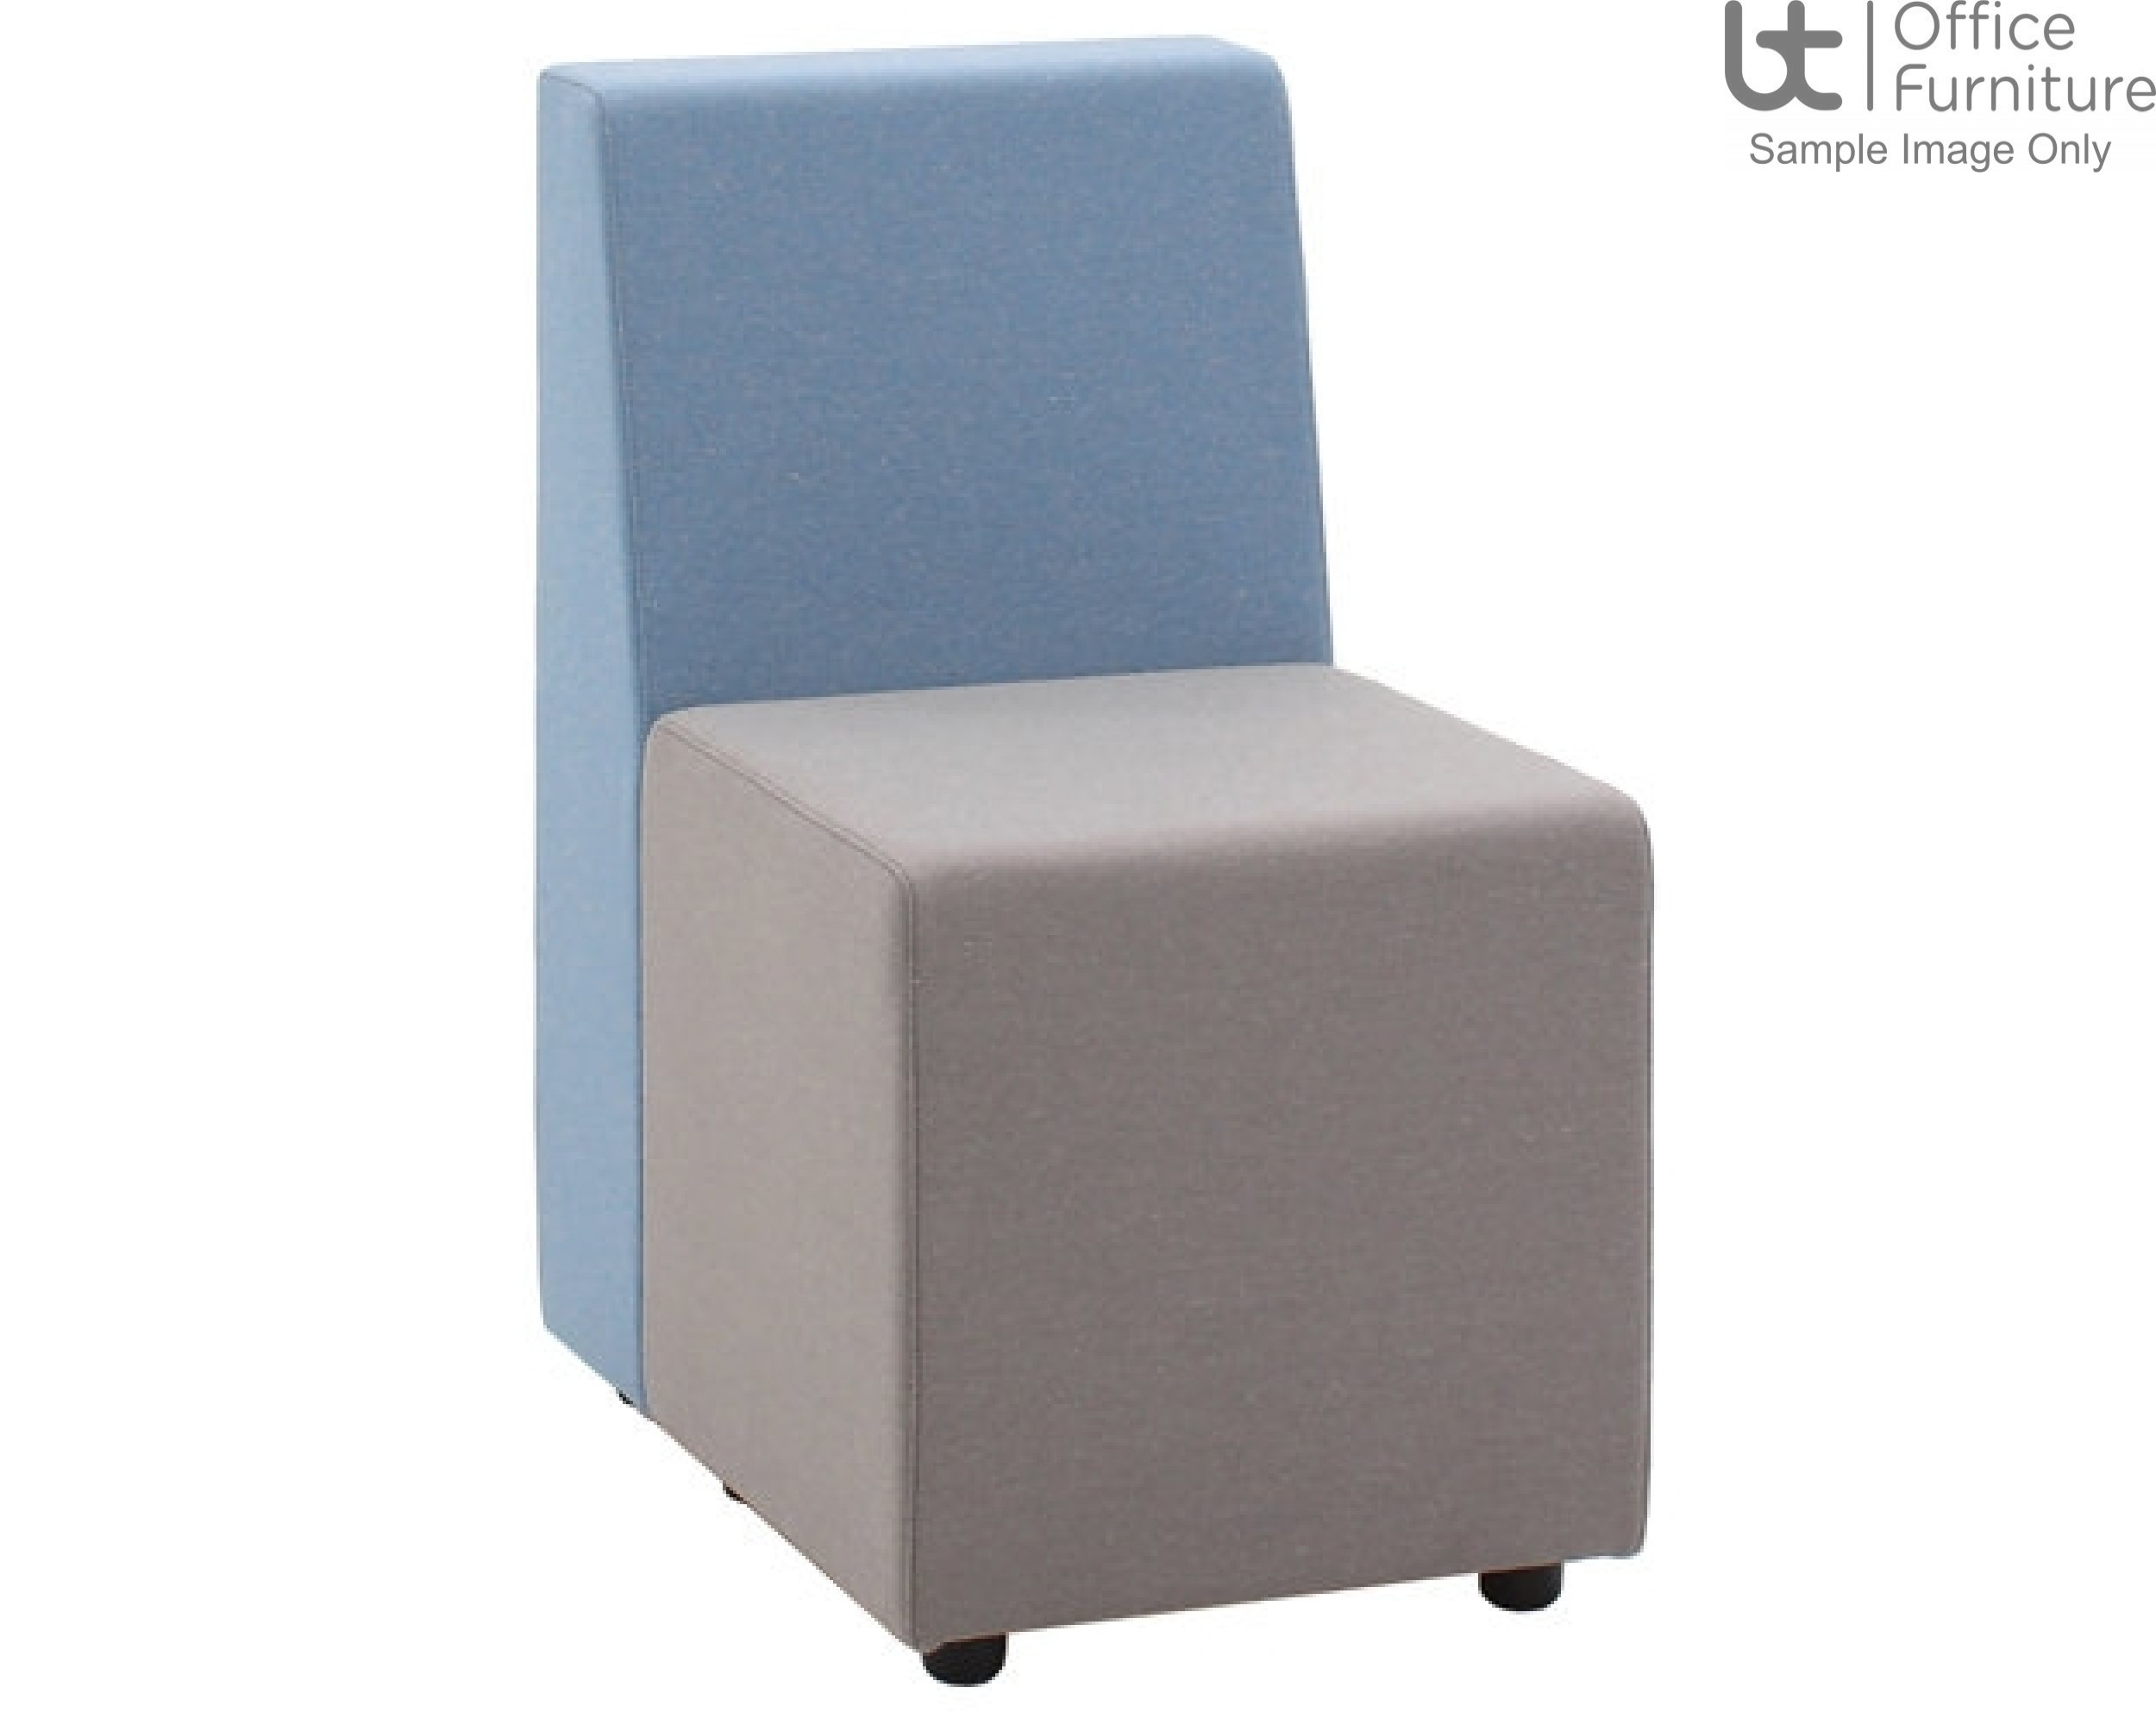 Verco Soft Seating - Box-It Landscape Single Unit with a Single Back